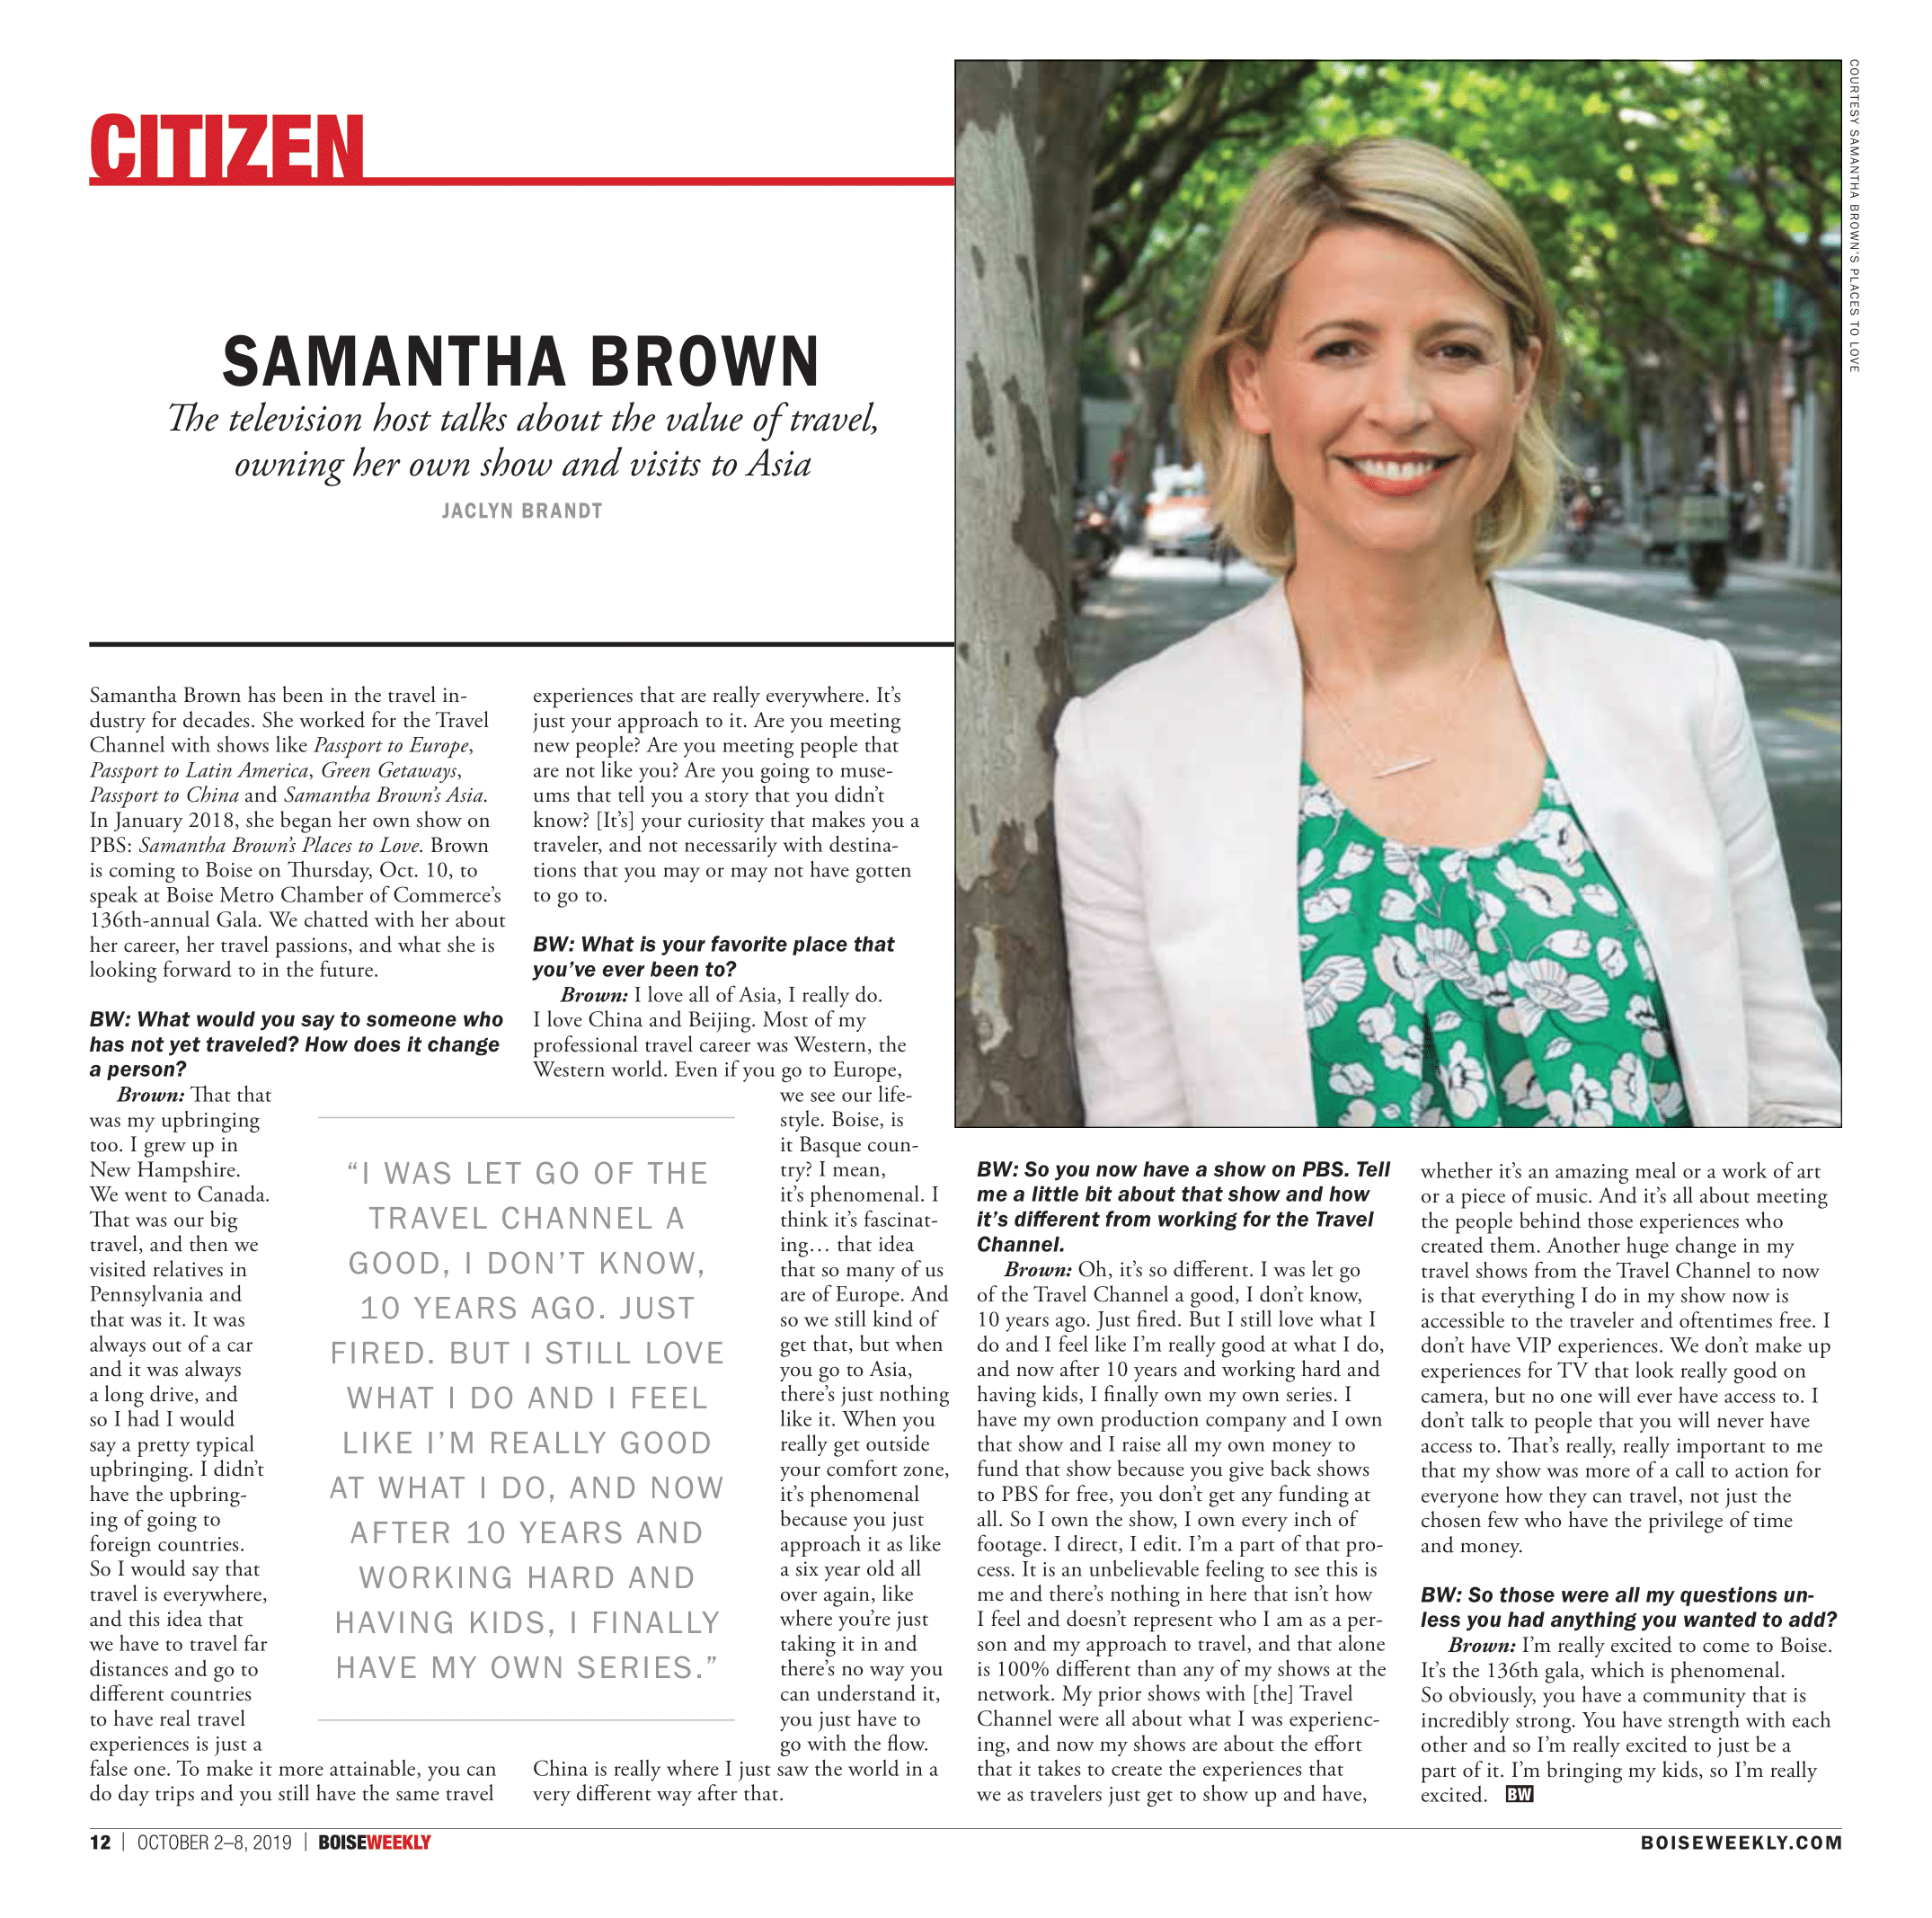 Samantha Brown interview - Jaclyn Brandt.